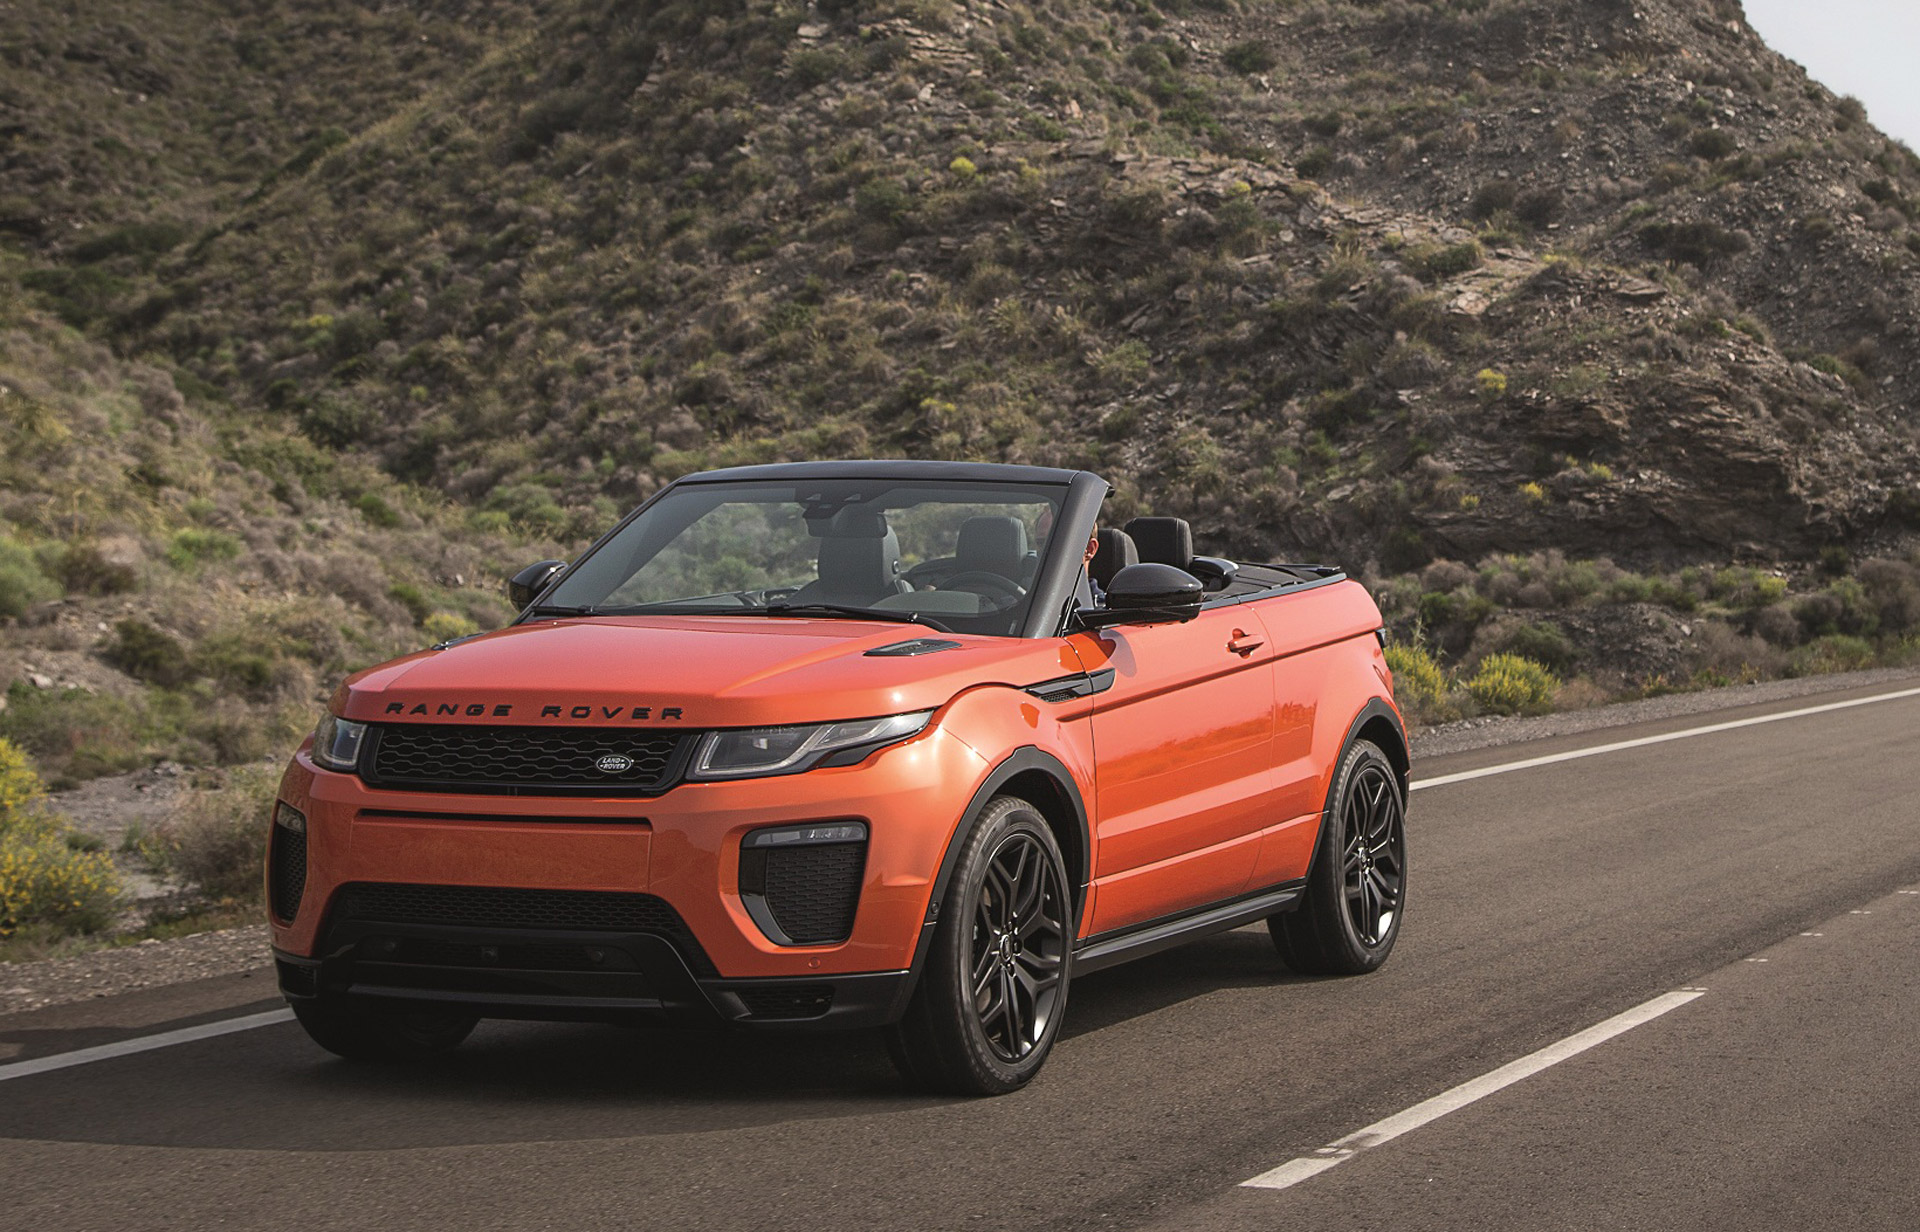 2017 Land Rover Range Rover Evoque Safety Review and Crash Test